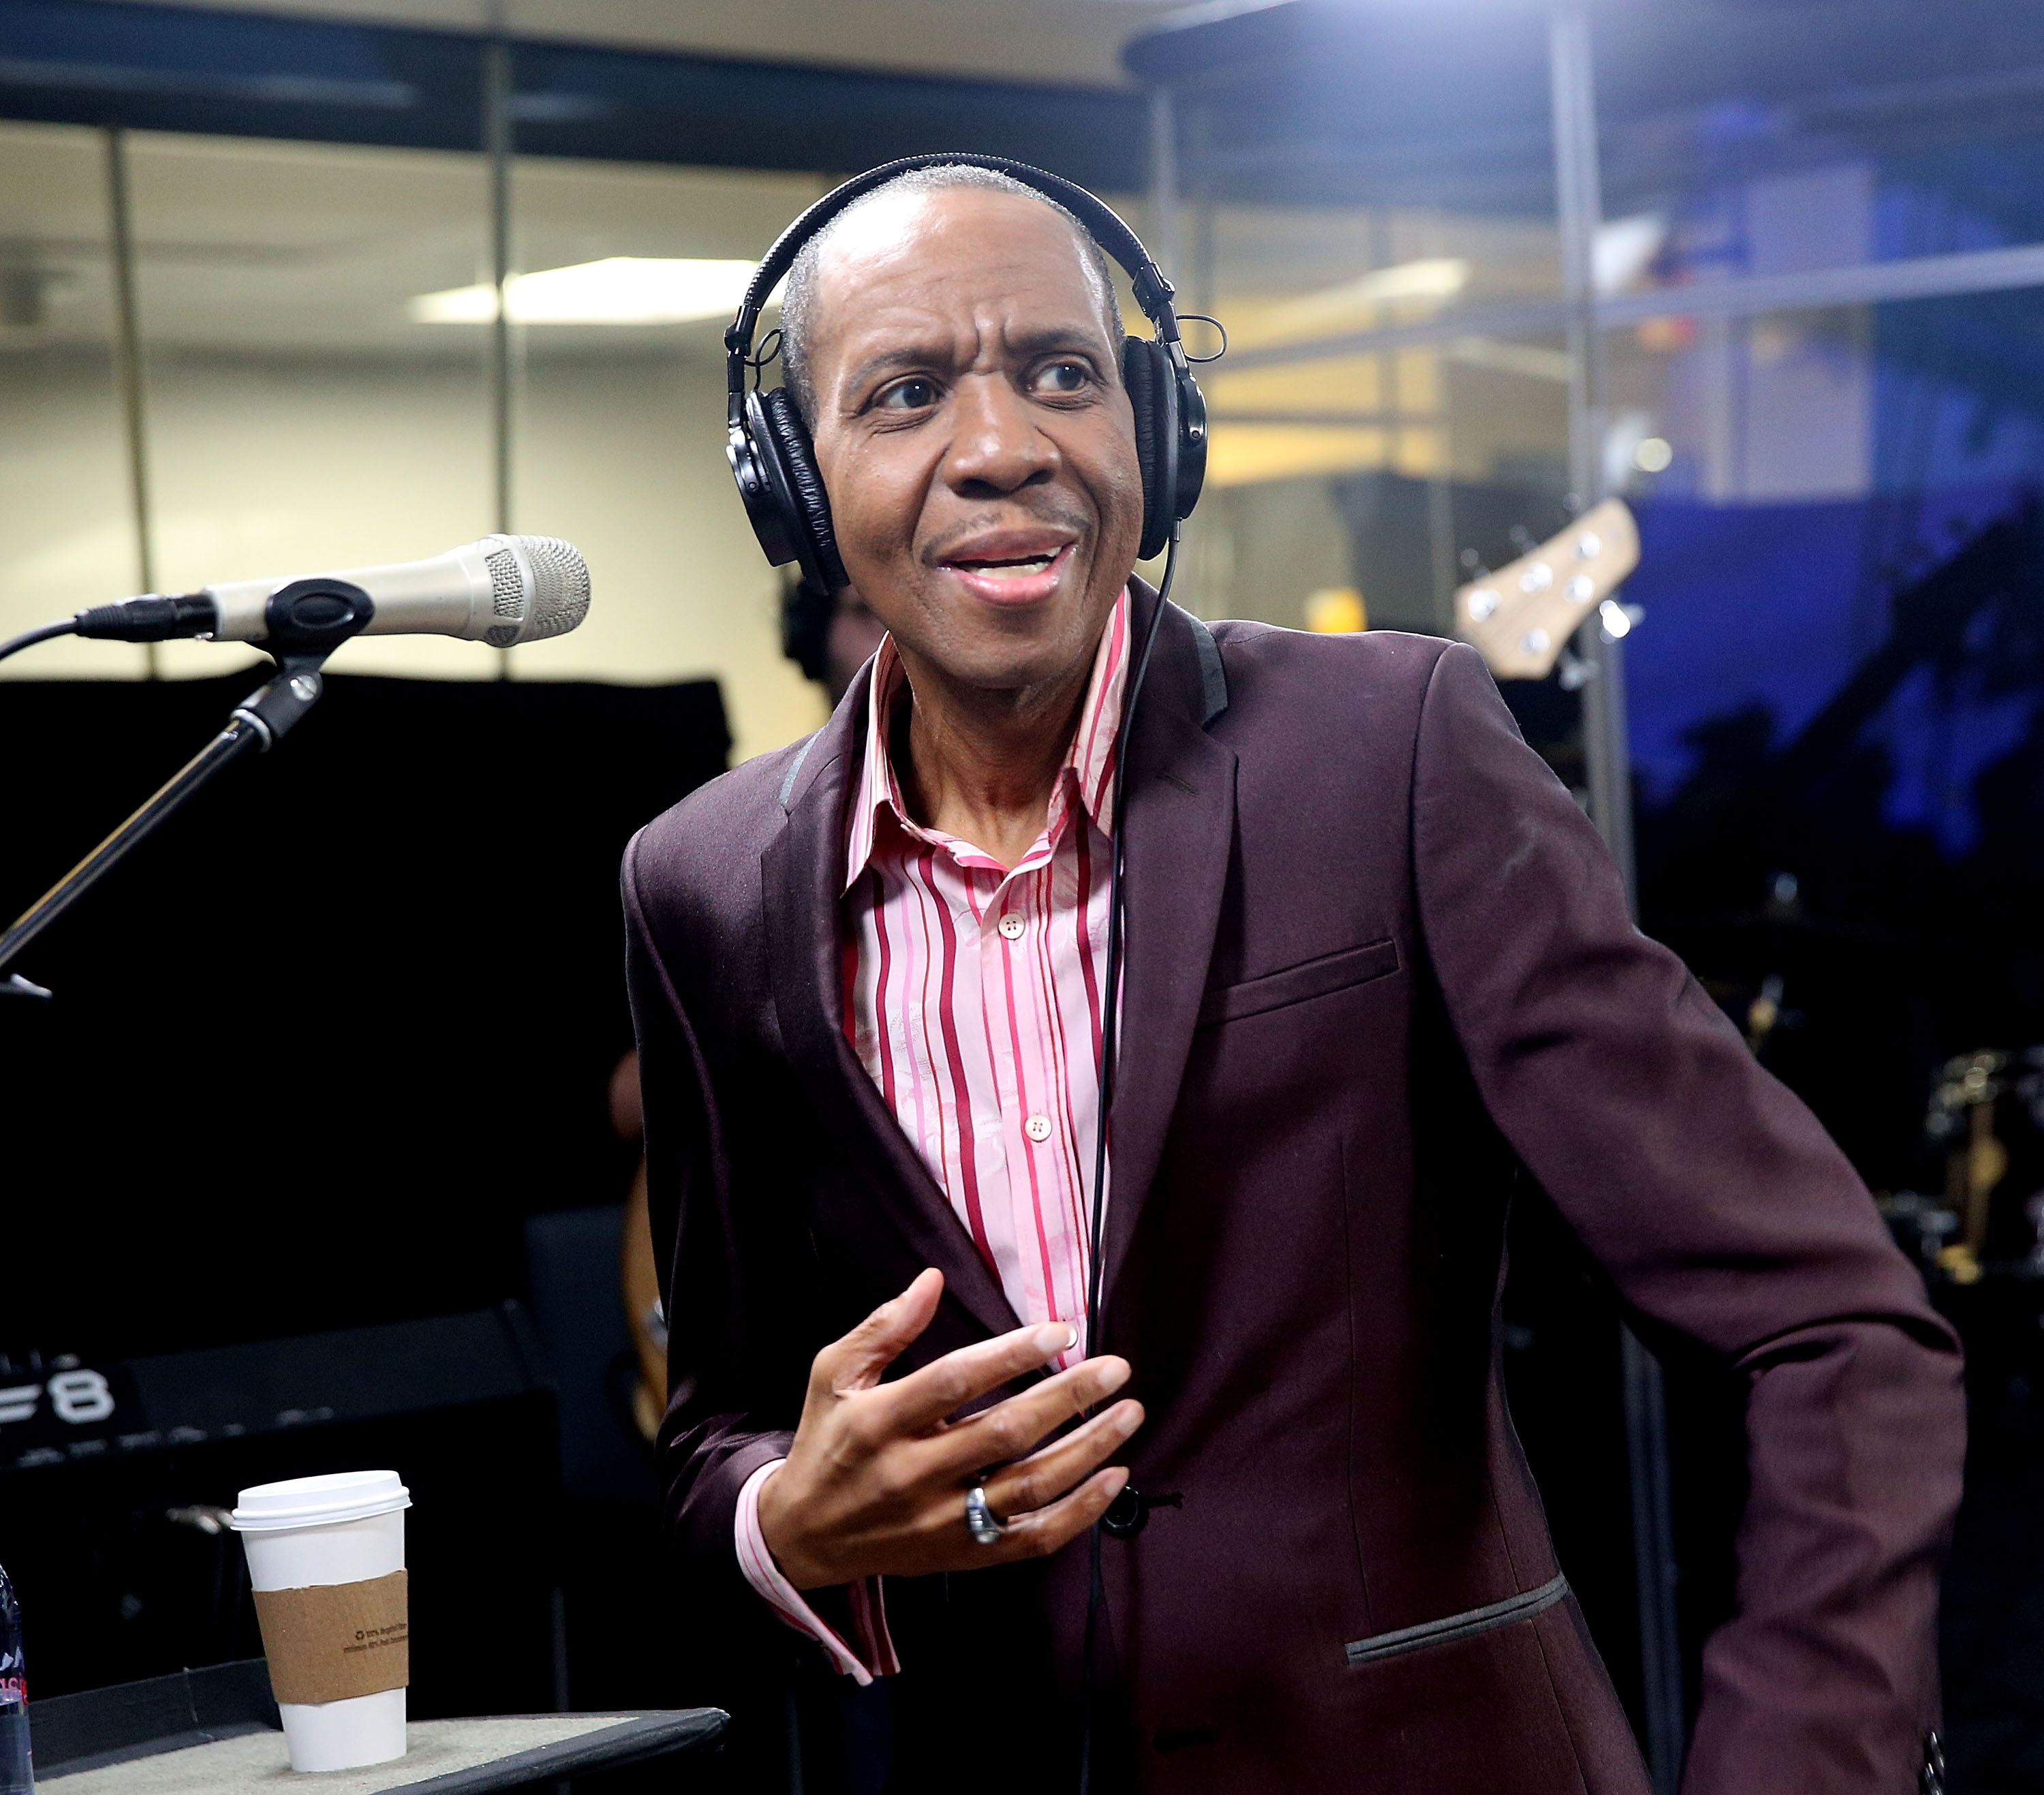 Freddie Jackson Performs On SiriusXM's The Groove Channel